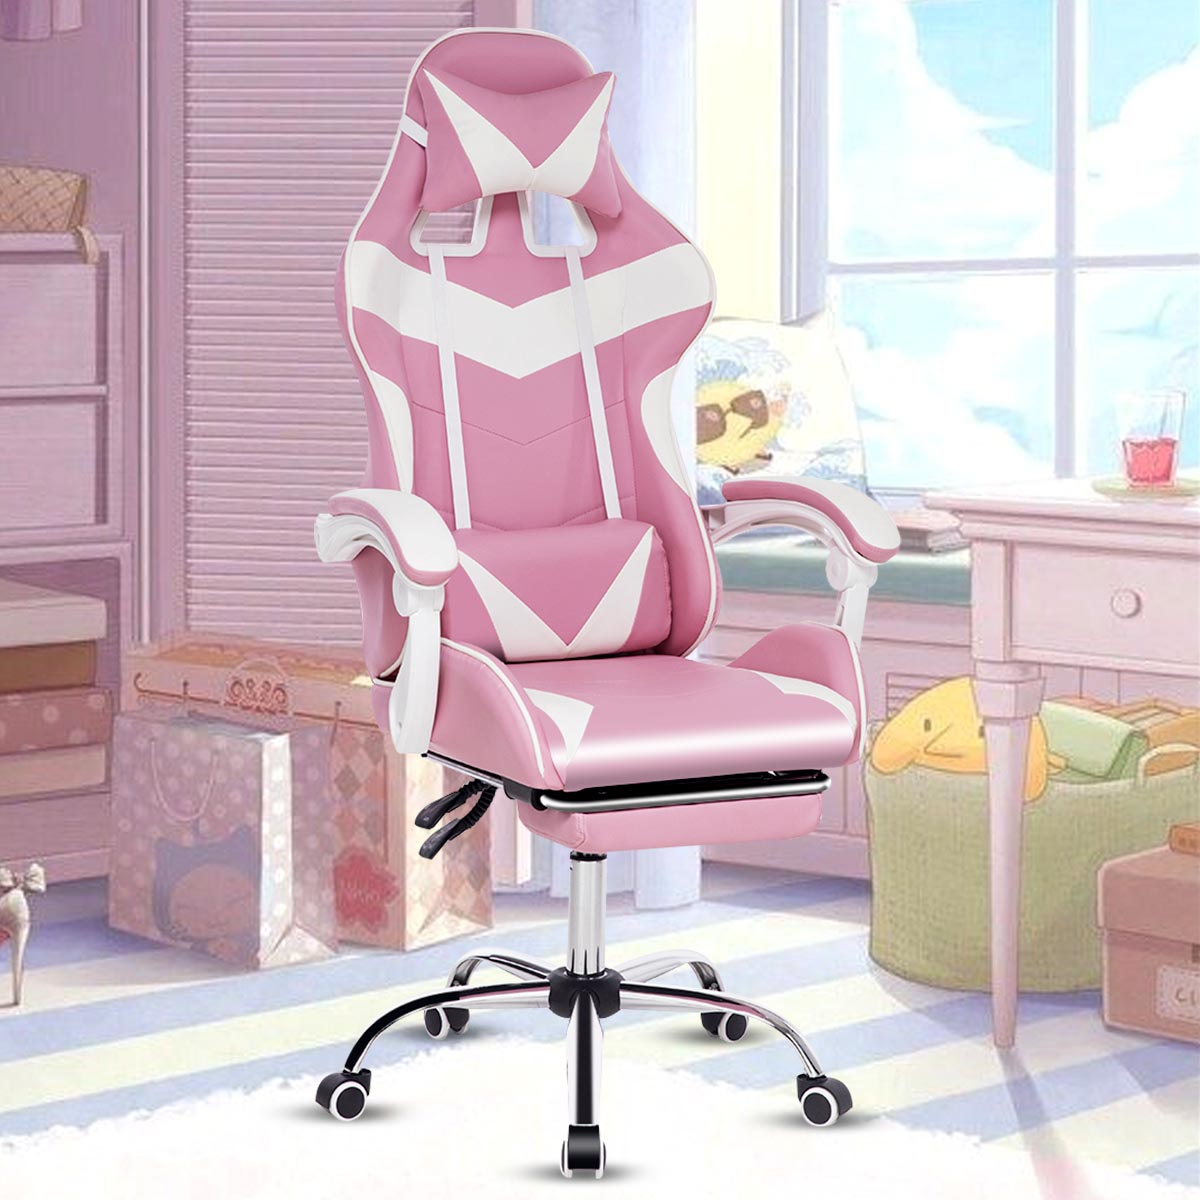 Hb46315a3d82e4039928796ba95f6e052J - Office Computer Chair WCG Gaming Chair Pink Silla Leather Desk Chair Internet Cafe Gamer Chair Household Armchair Office Chair